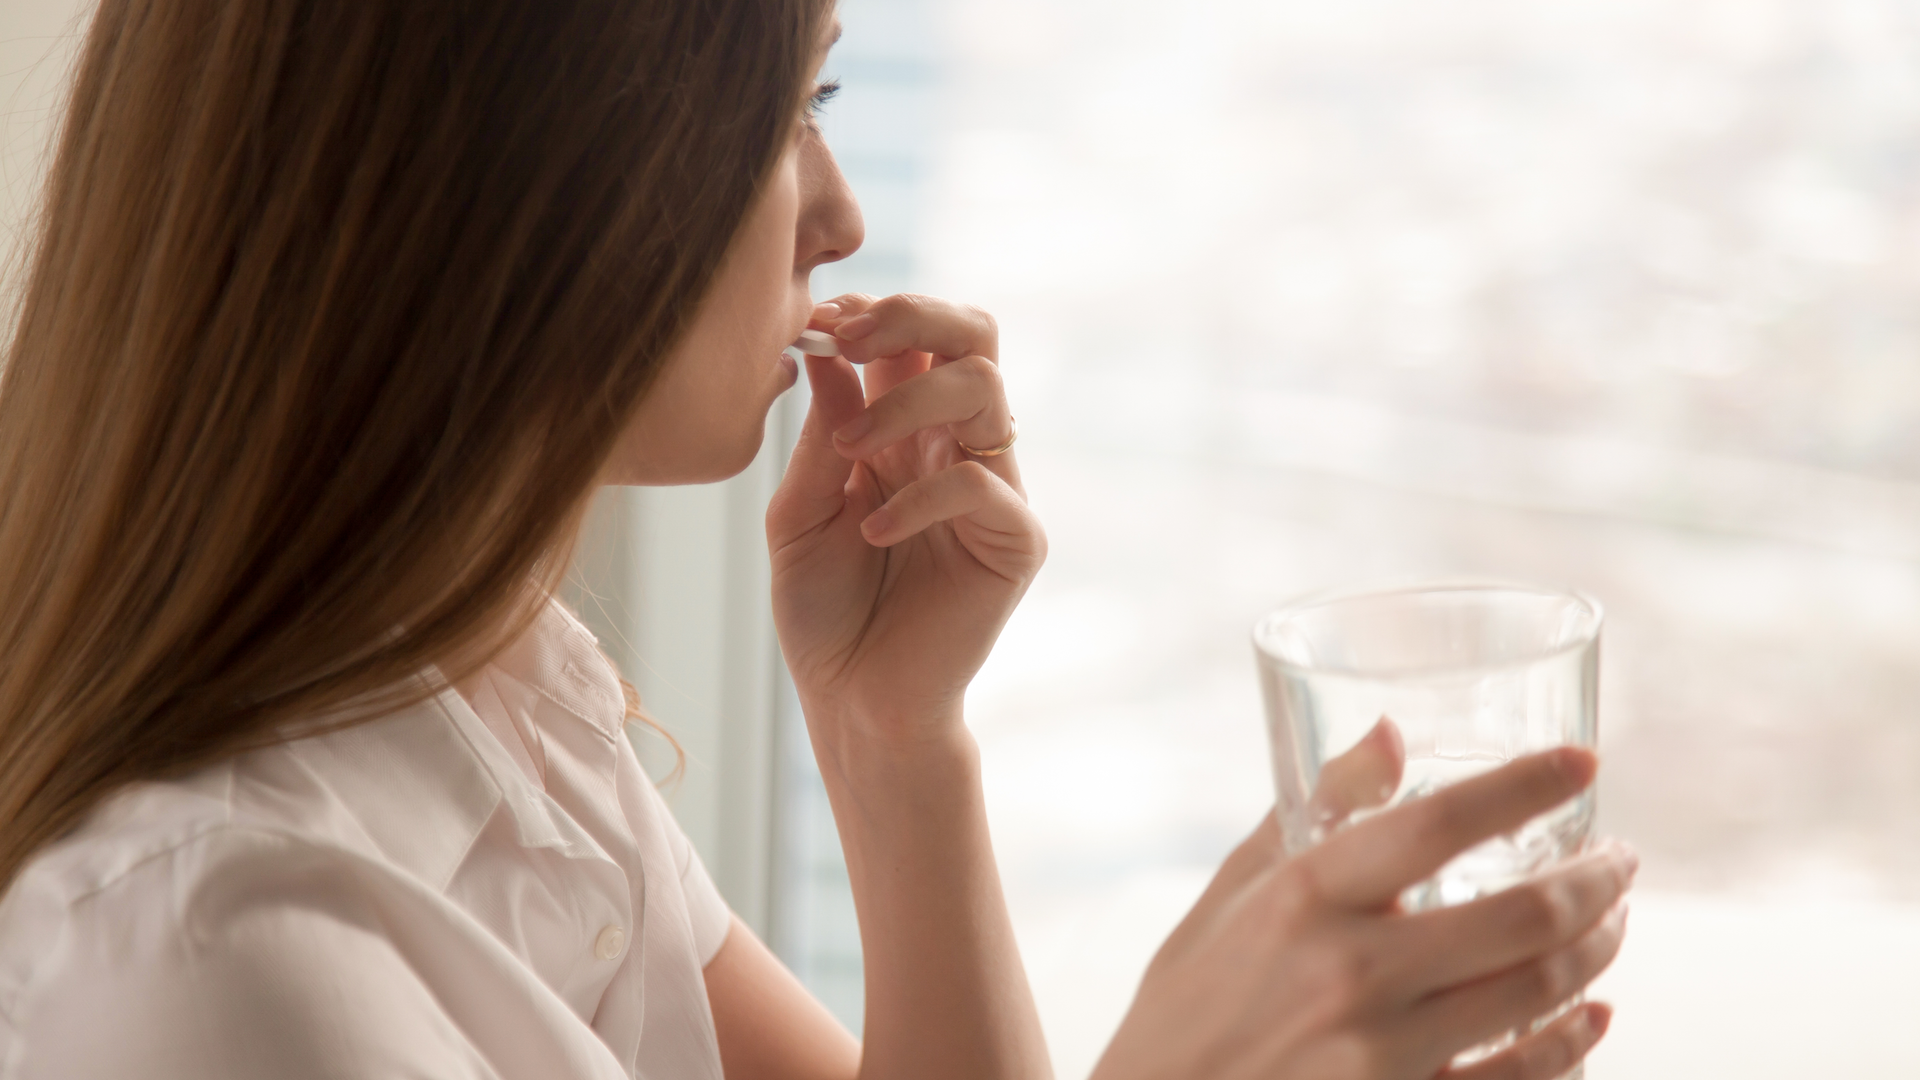 Am I Pregnant? 8 Early Symptoms That Could Indicate That You're